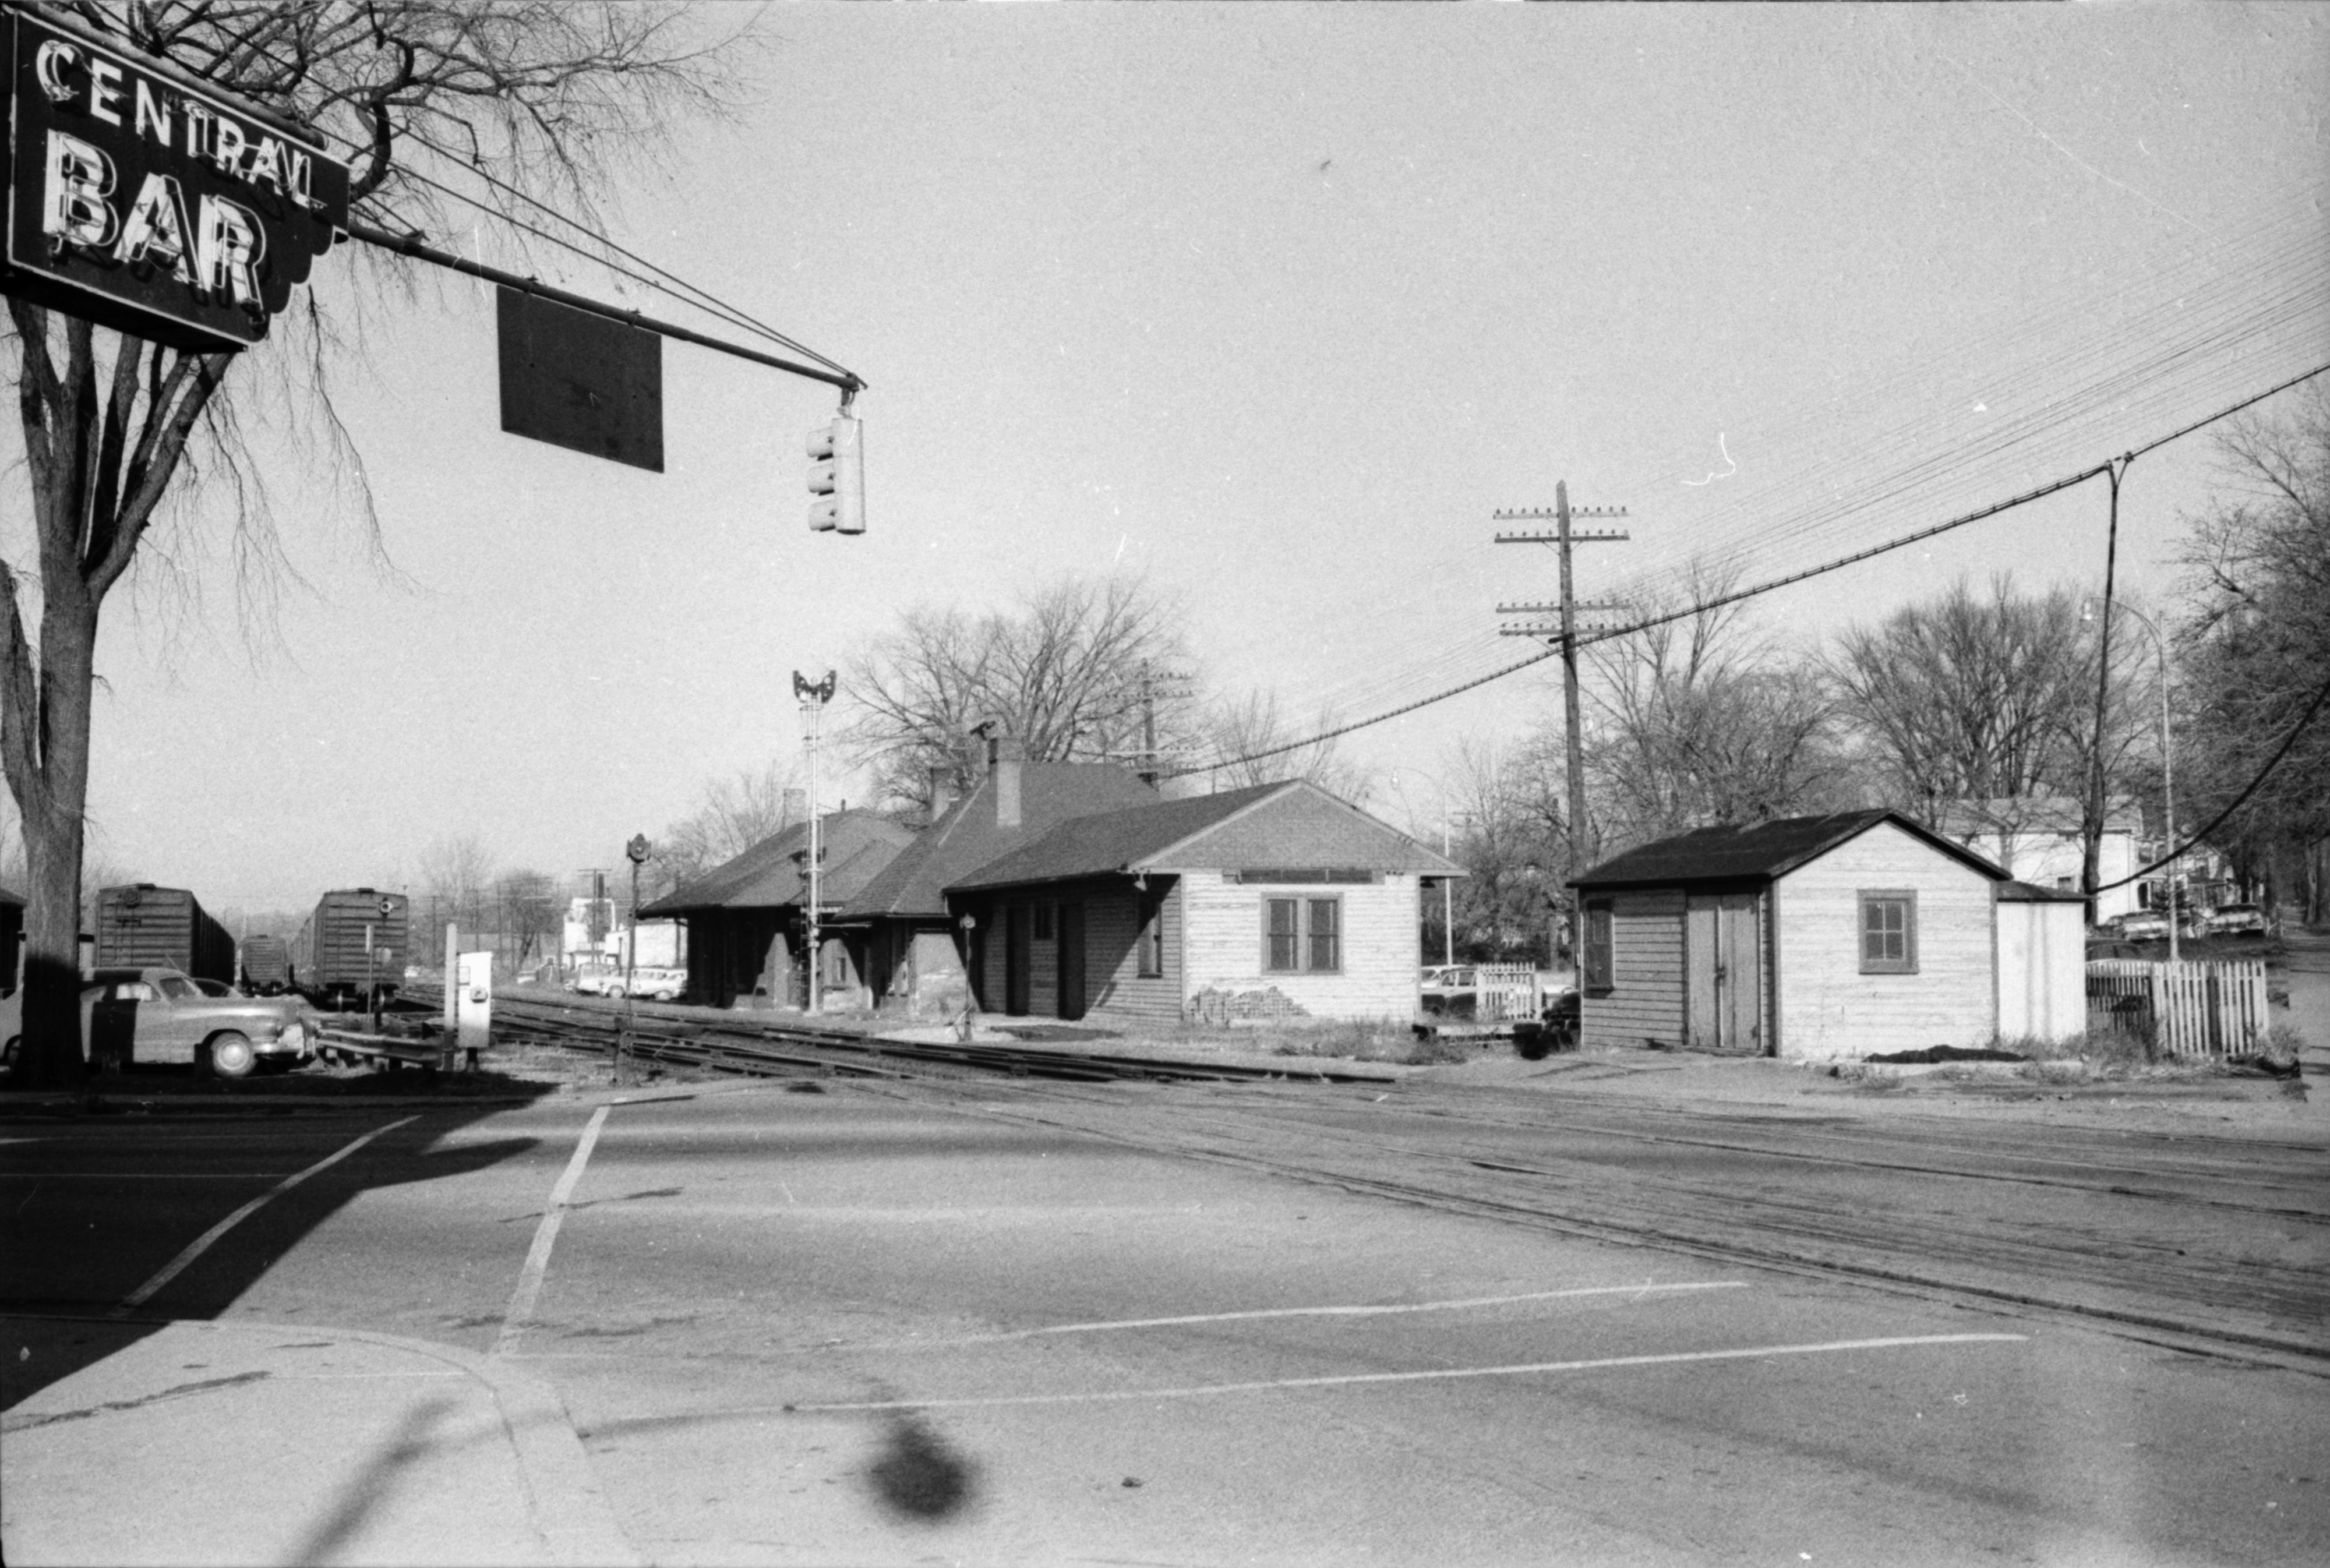 Old train station in Depot Town, Ypsilanti, undated image